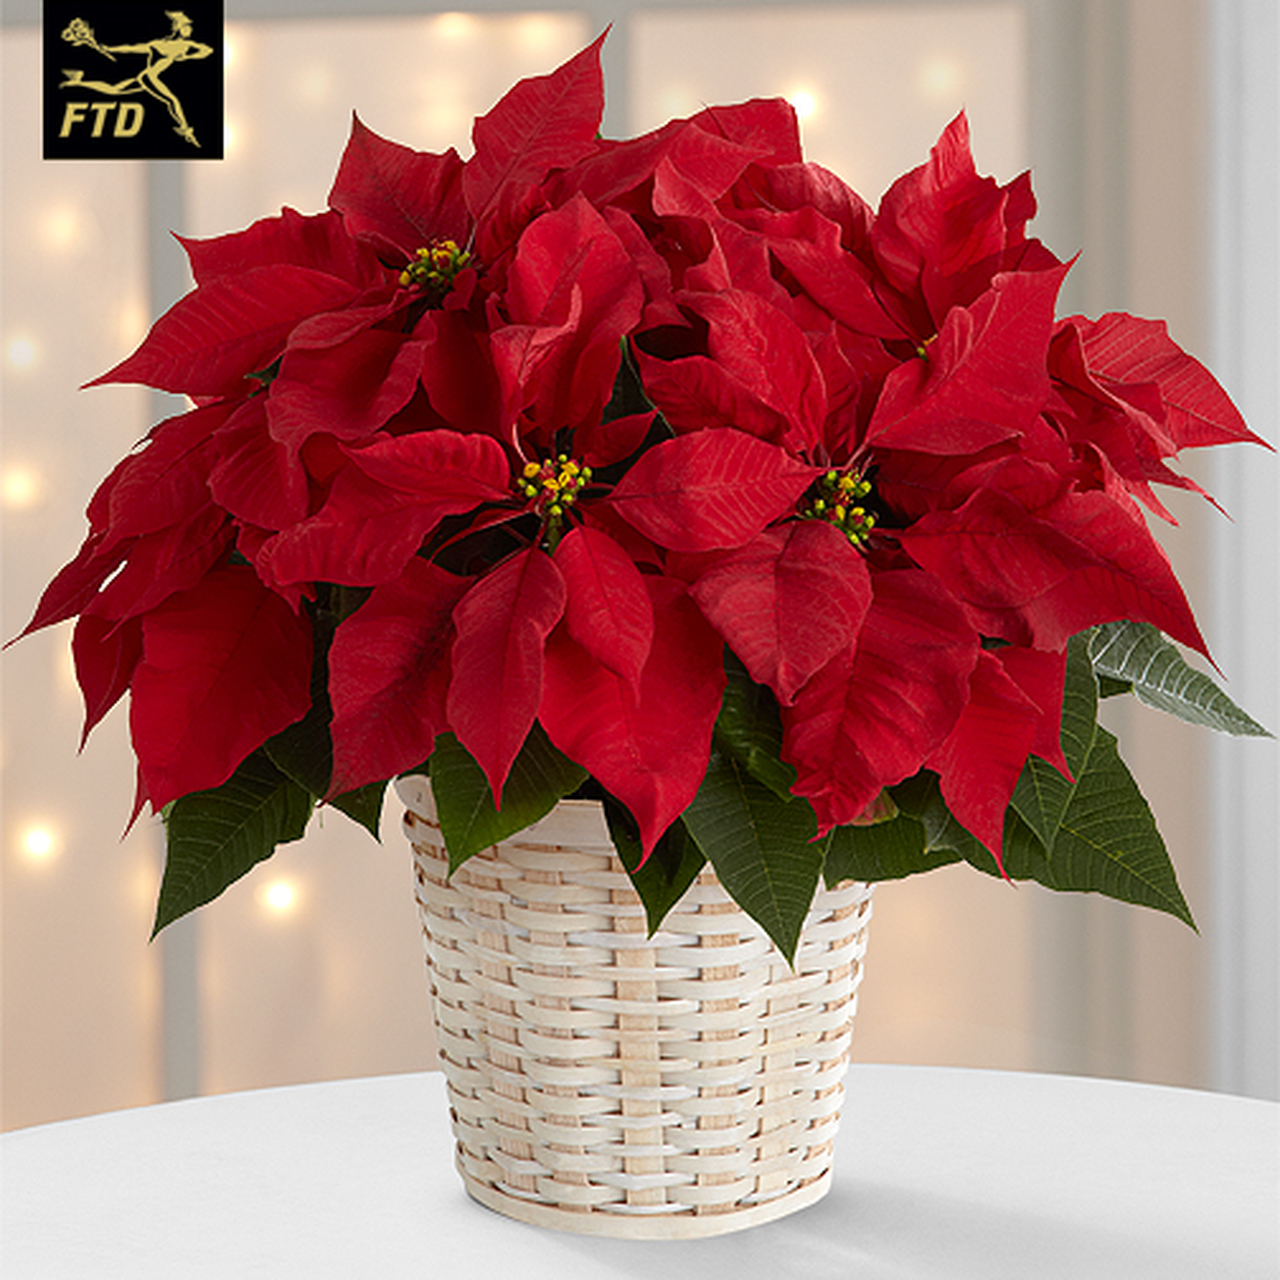 Red Poinsettia by The Flowerloft